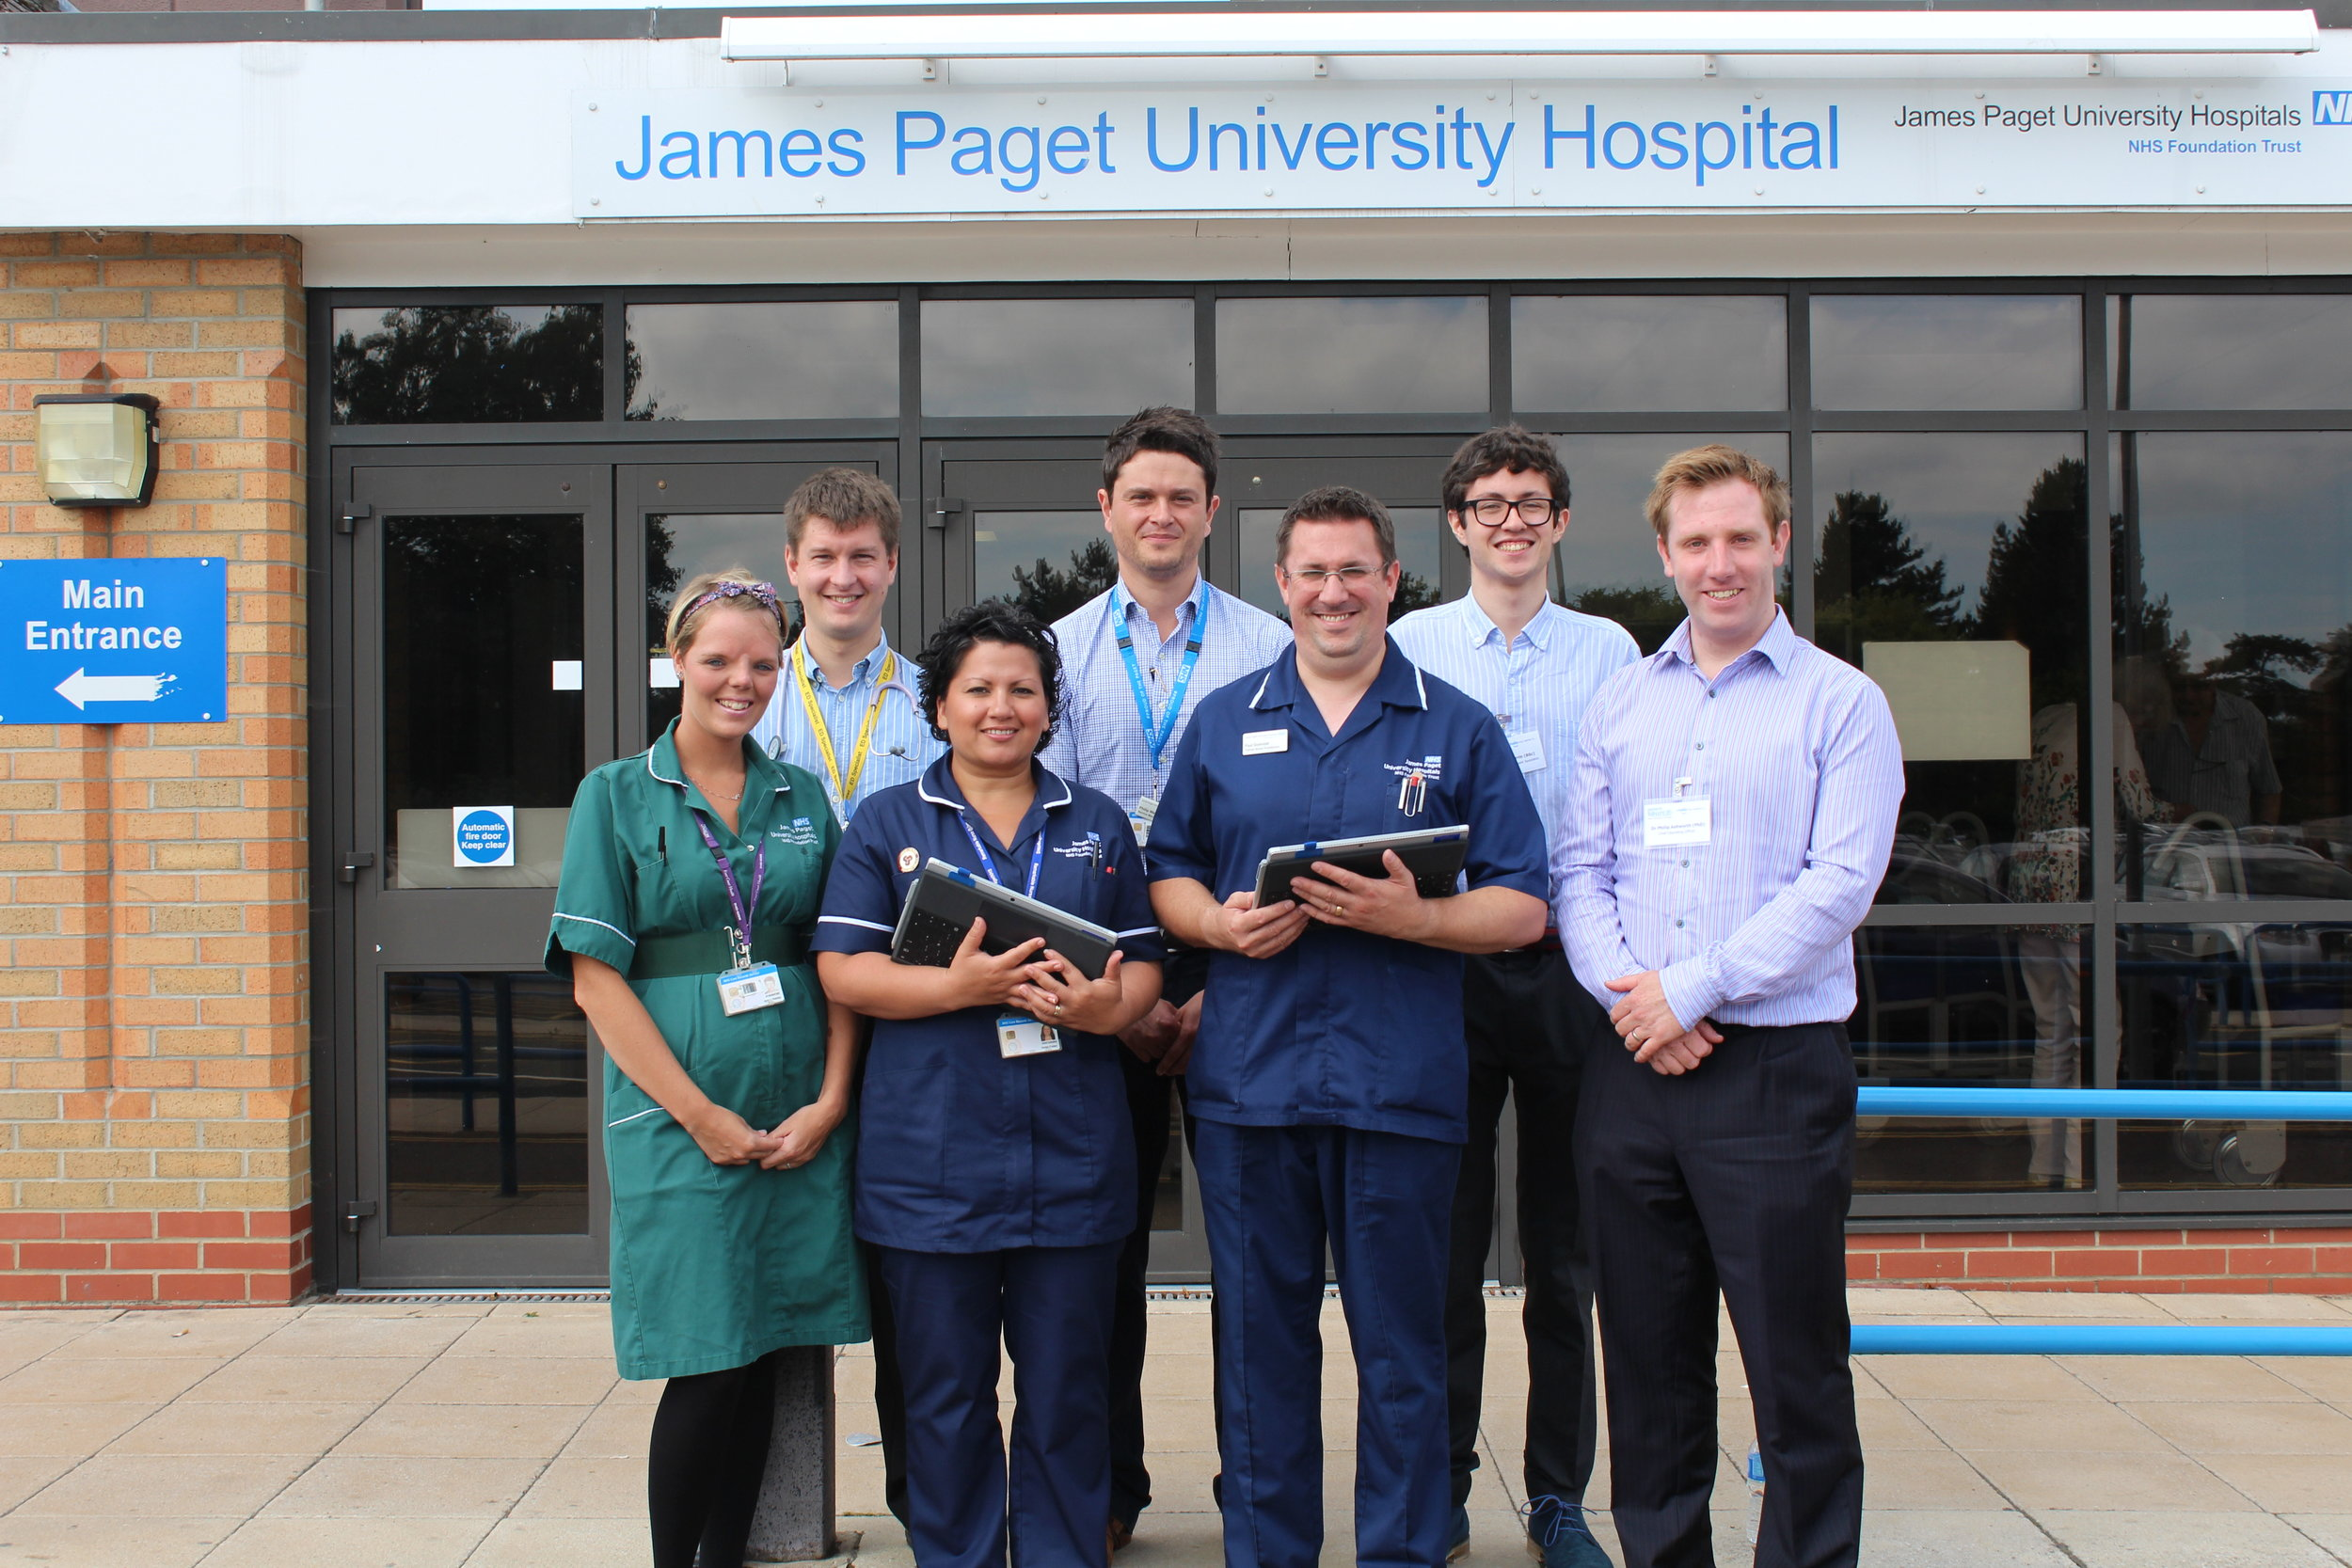 James Paget Hospital Ambulatory Care Unit staff standing with members of the PatientSource team outside of JPUH (Photography by Laura Crisp)